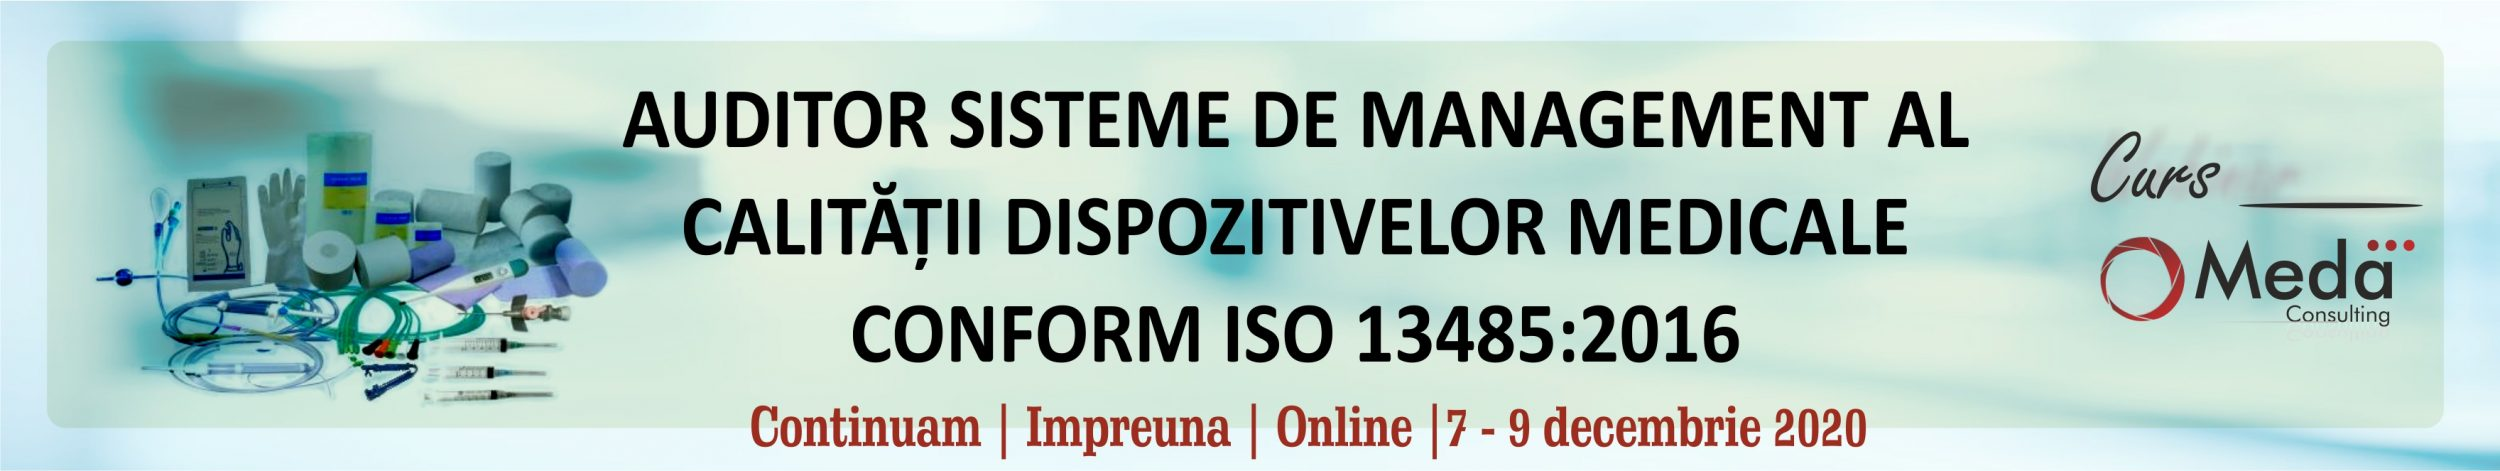 Auditor sisteme de management al calitatii dispozitivelor medicale conform iso 13485:2016